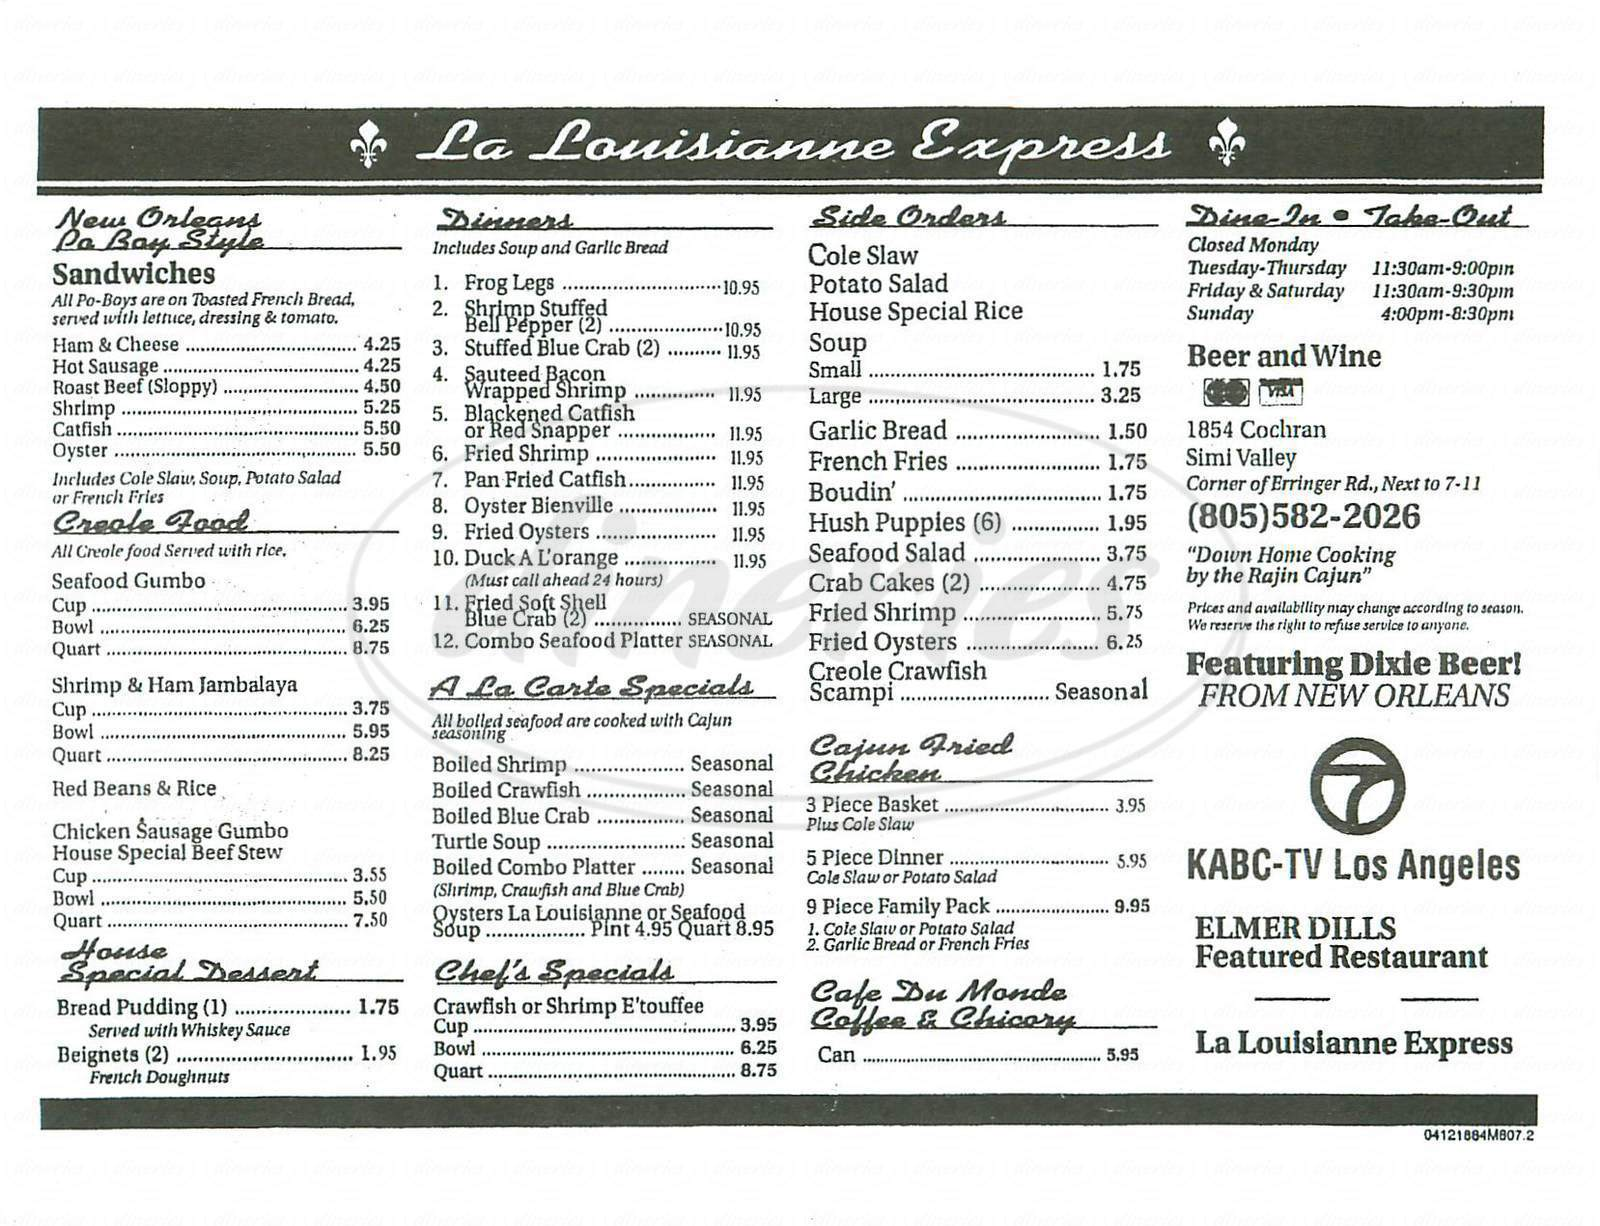 menu for La Louisianne Express